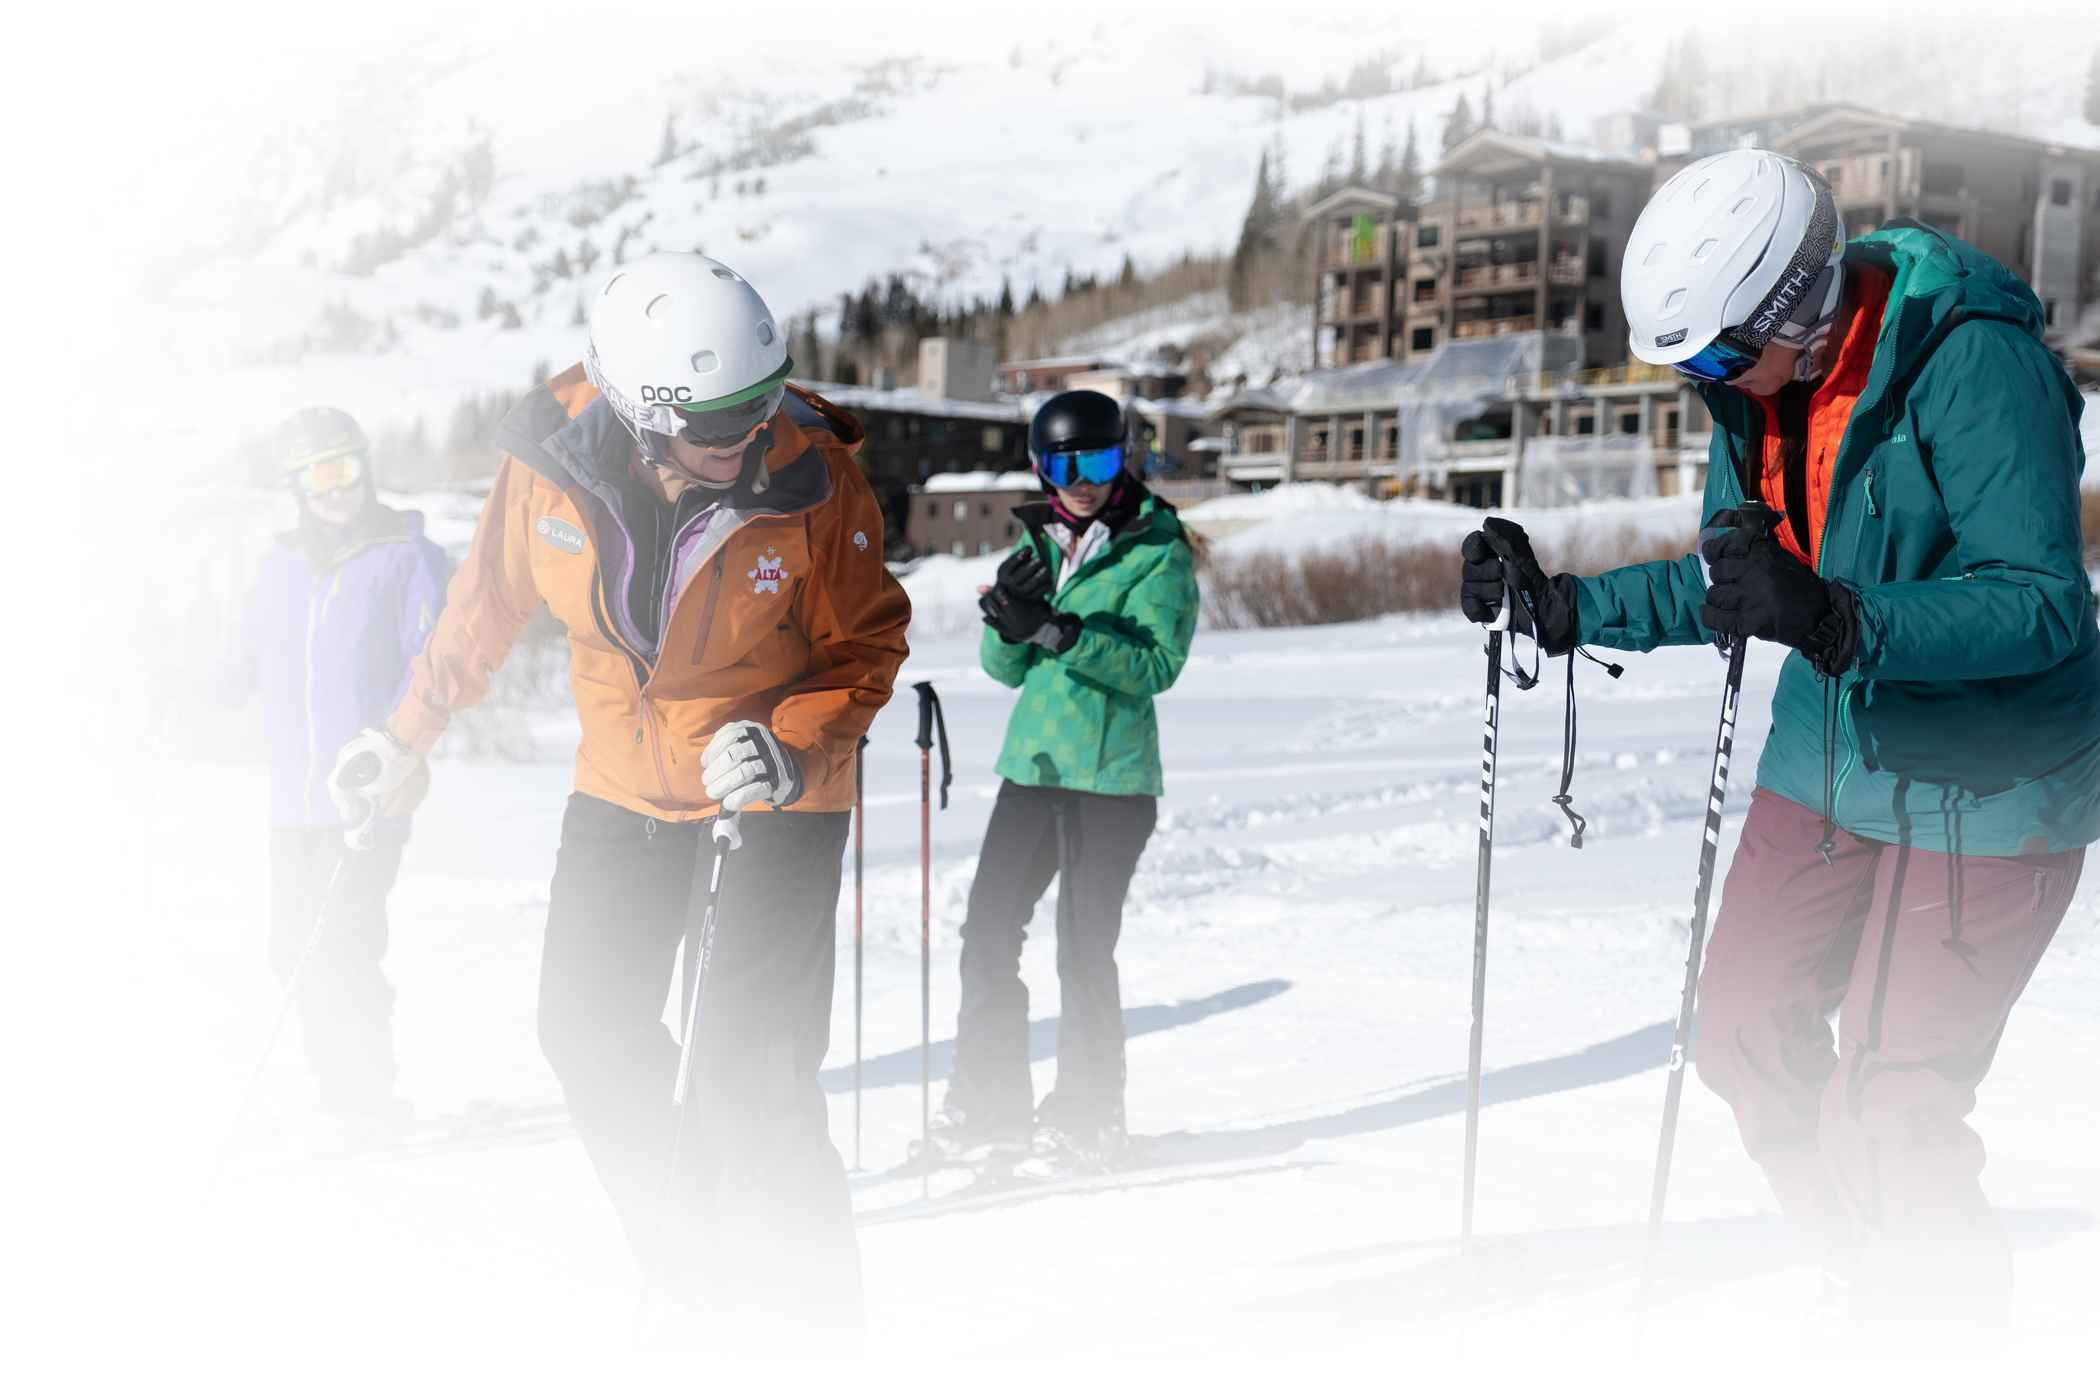 Alta ski instructor instructs a group of beginner skiers at Alta Ski Area